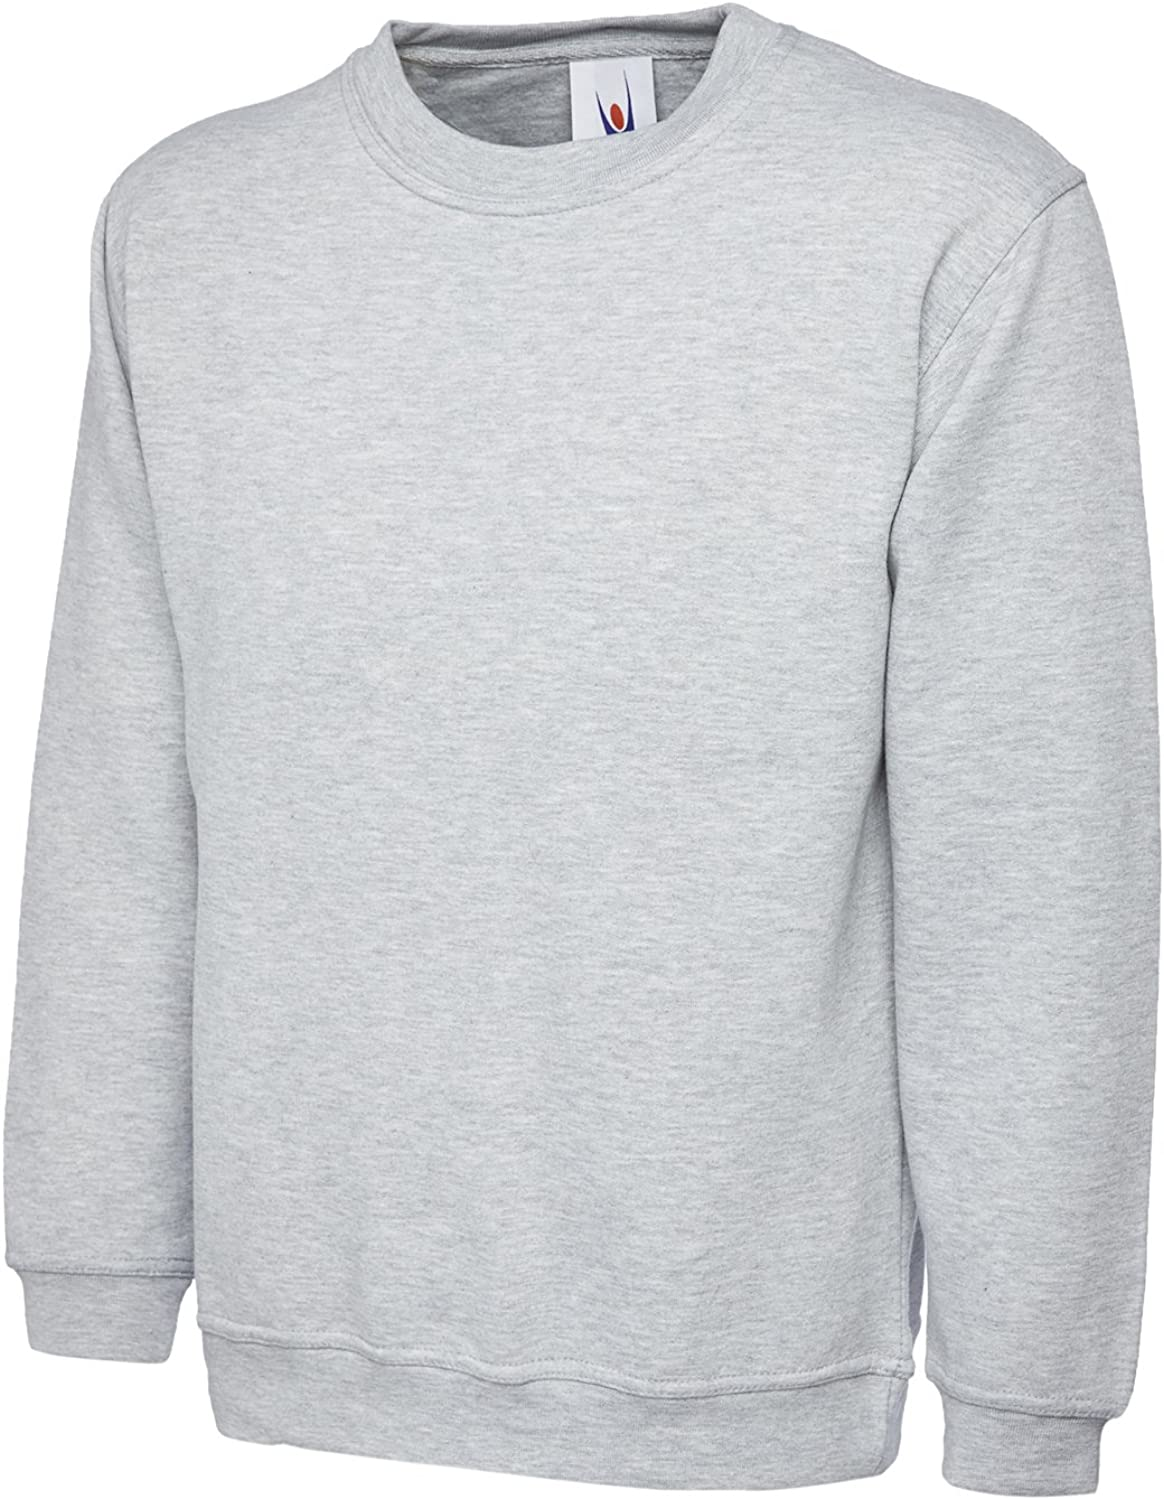 Large Charcoal Uneek 300g Plain Classic Crewneck Sweatshirt